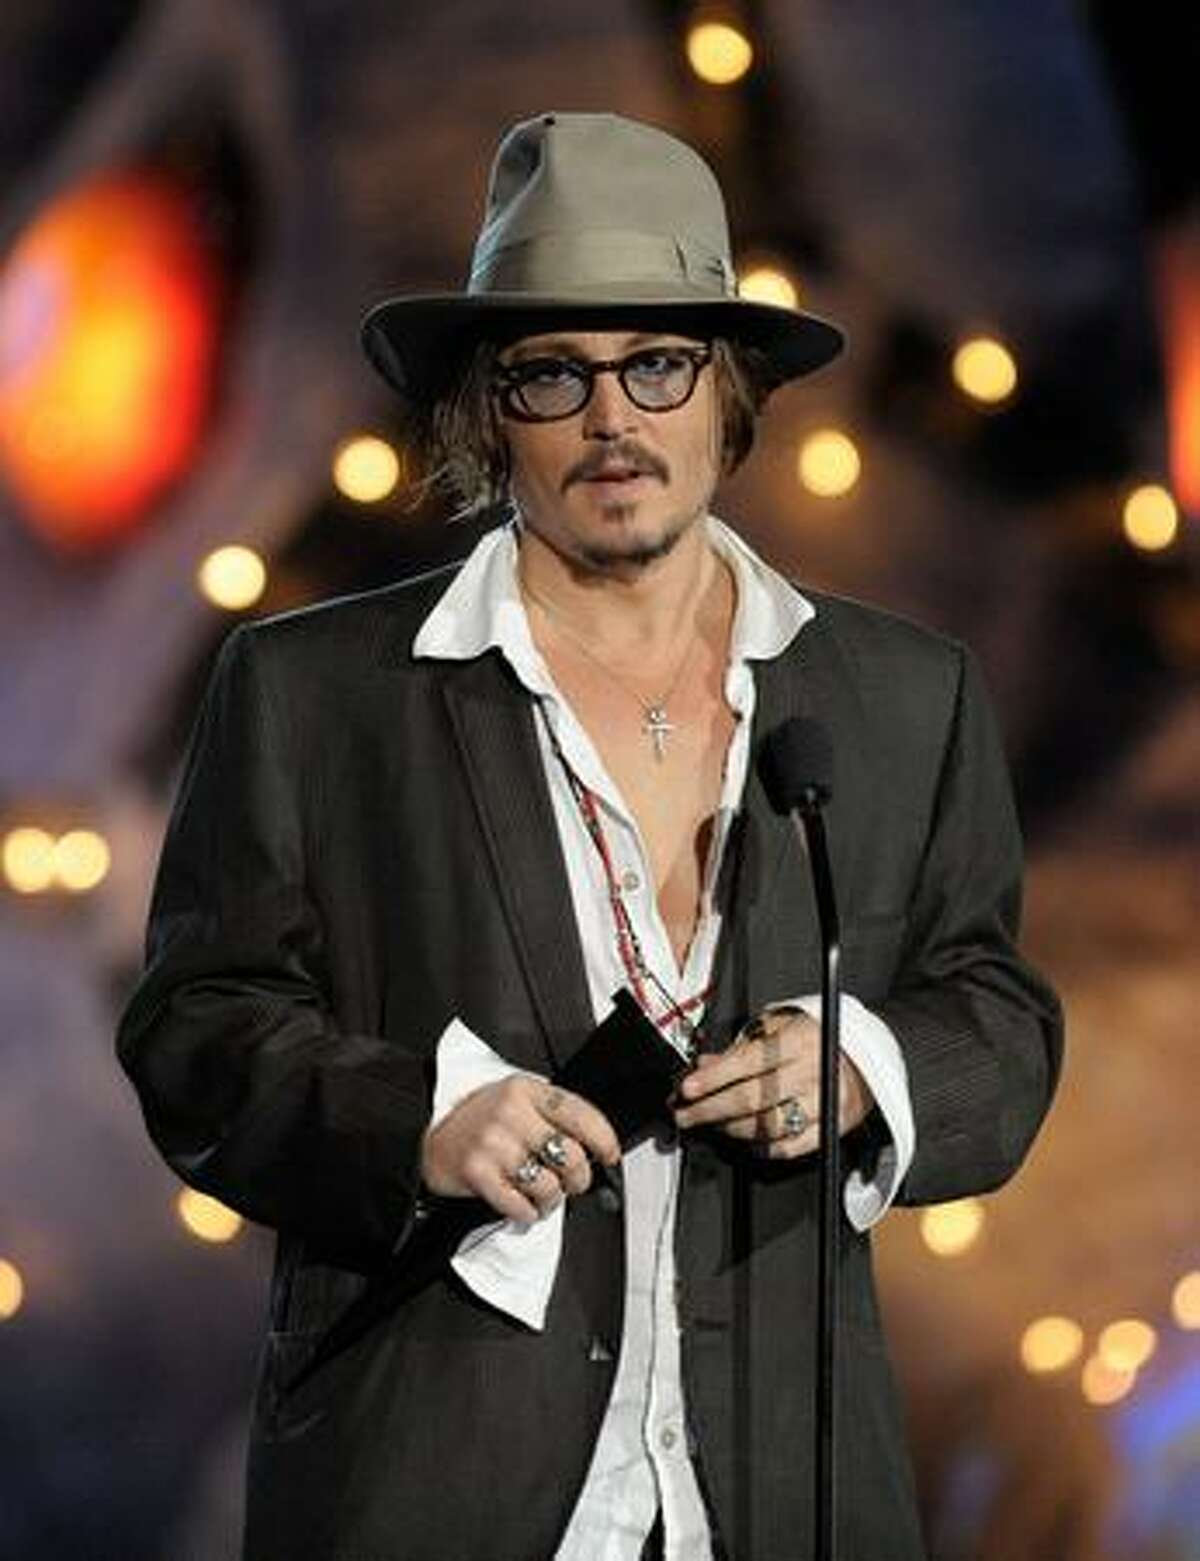 Actor Johnny Depp presents the Rock Immortal award onstage during Spike TV's Scream 2009 awards show held Oct. 17 in Los Angeles.